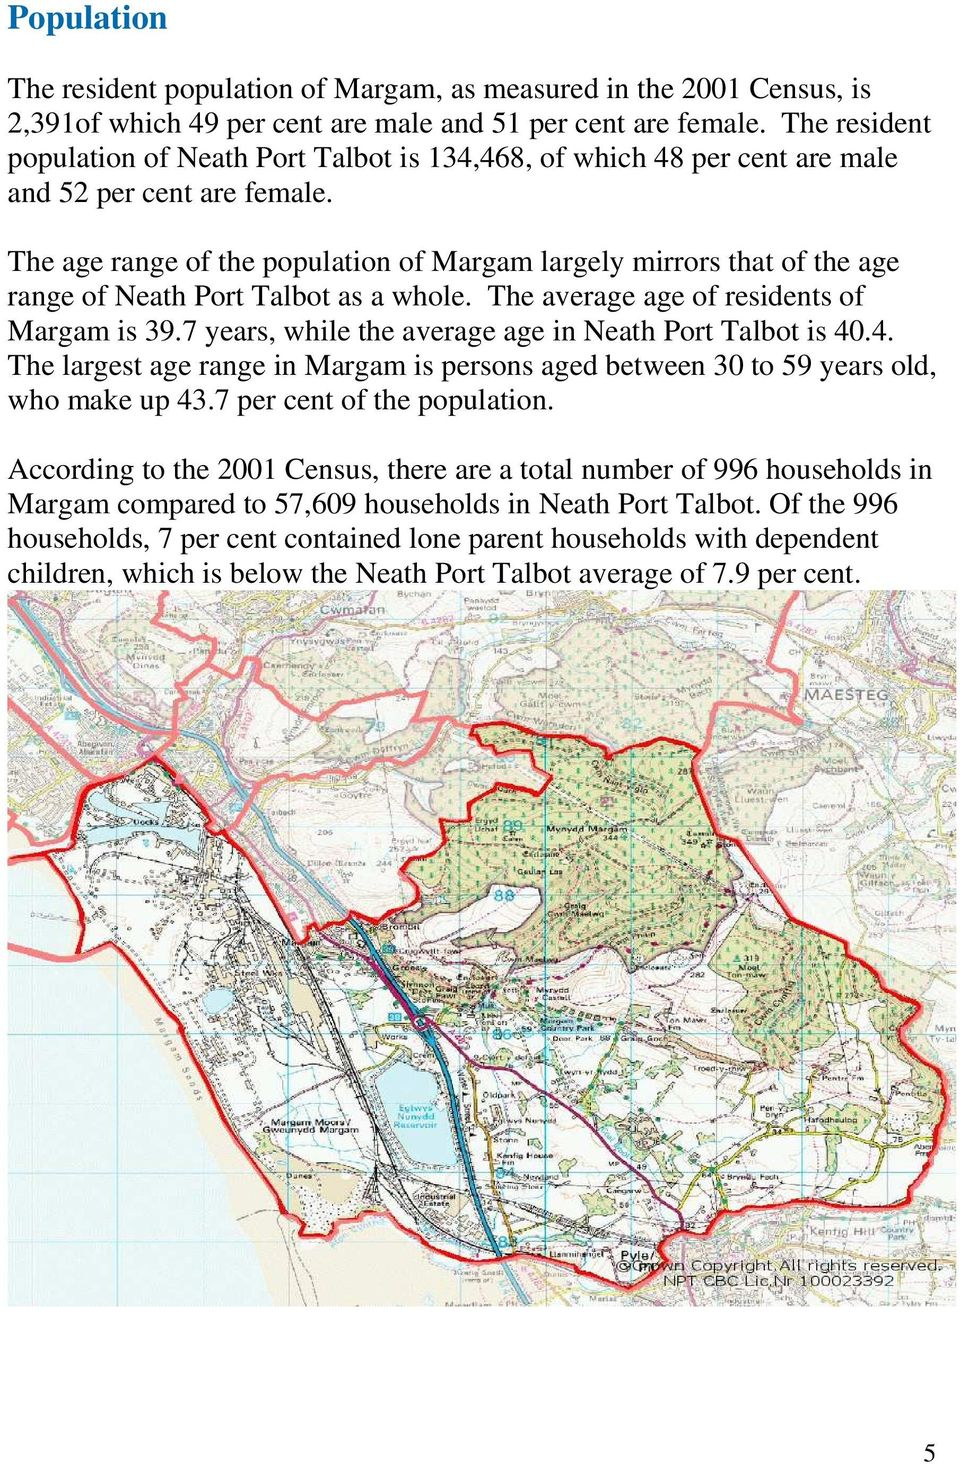 The age range of the population of Margam largely mirrors that of the age range of Neath Port Talbot as a whole. The average age of residents of Margam is 39.